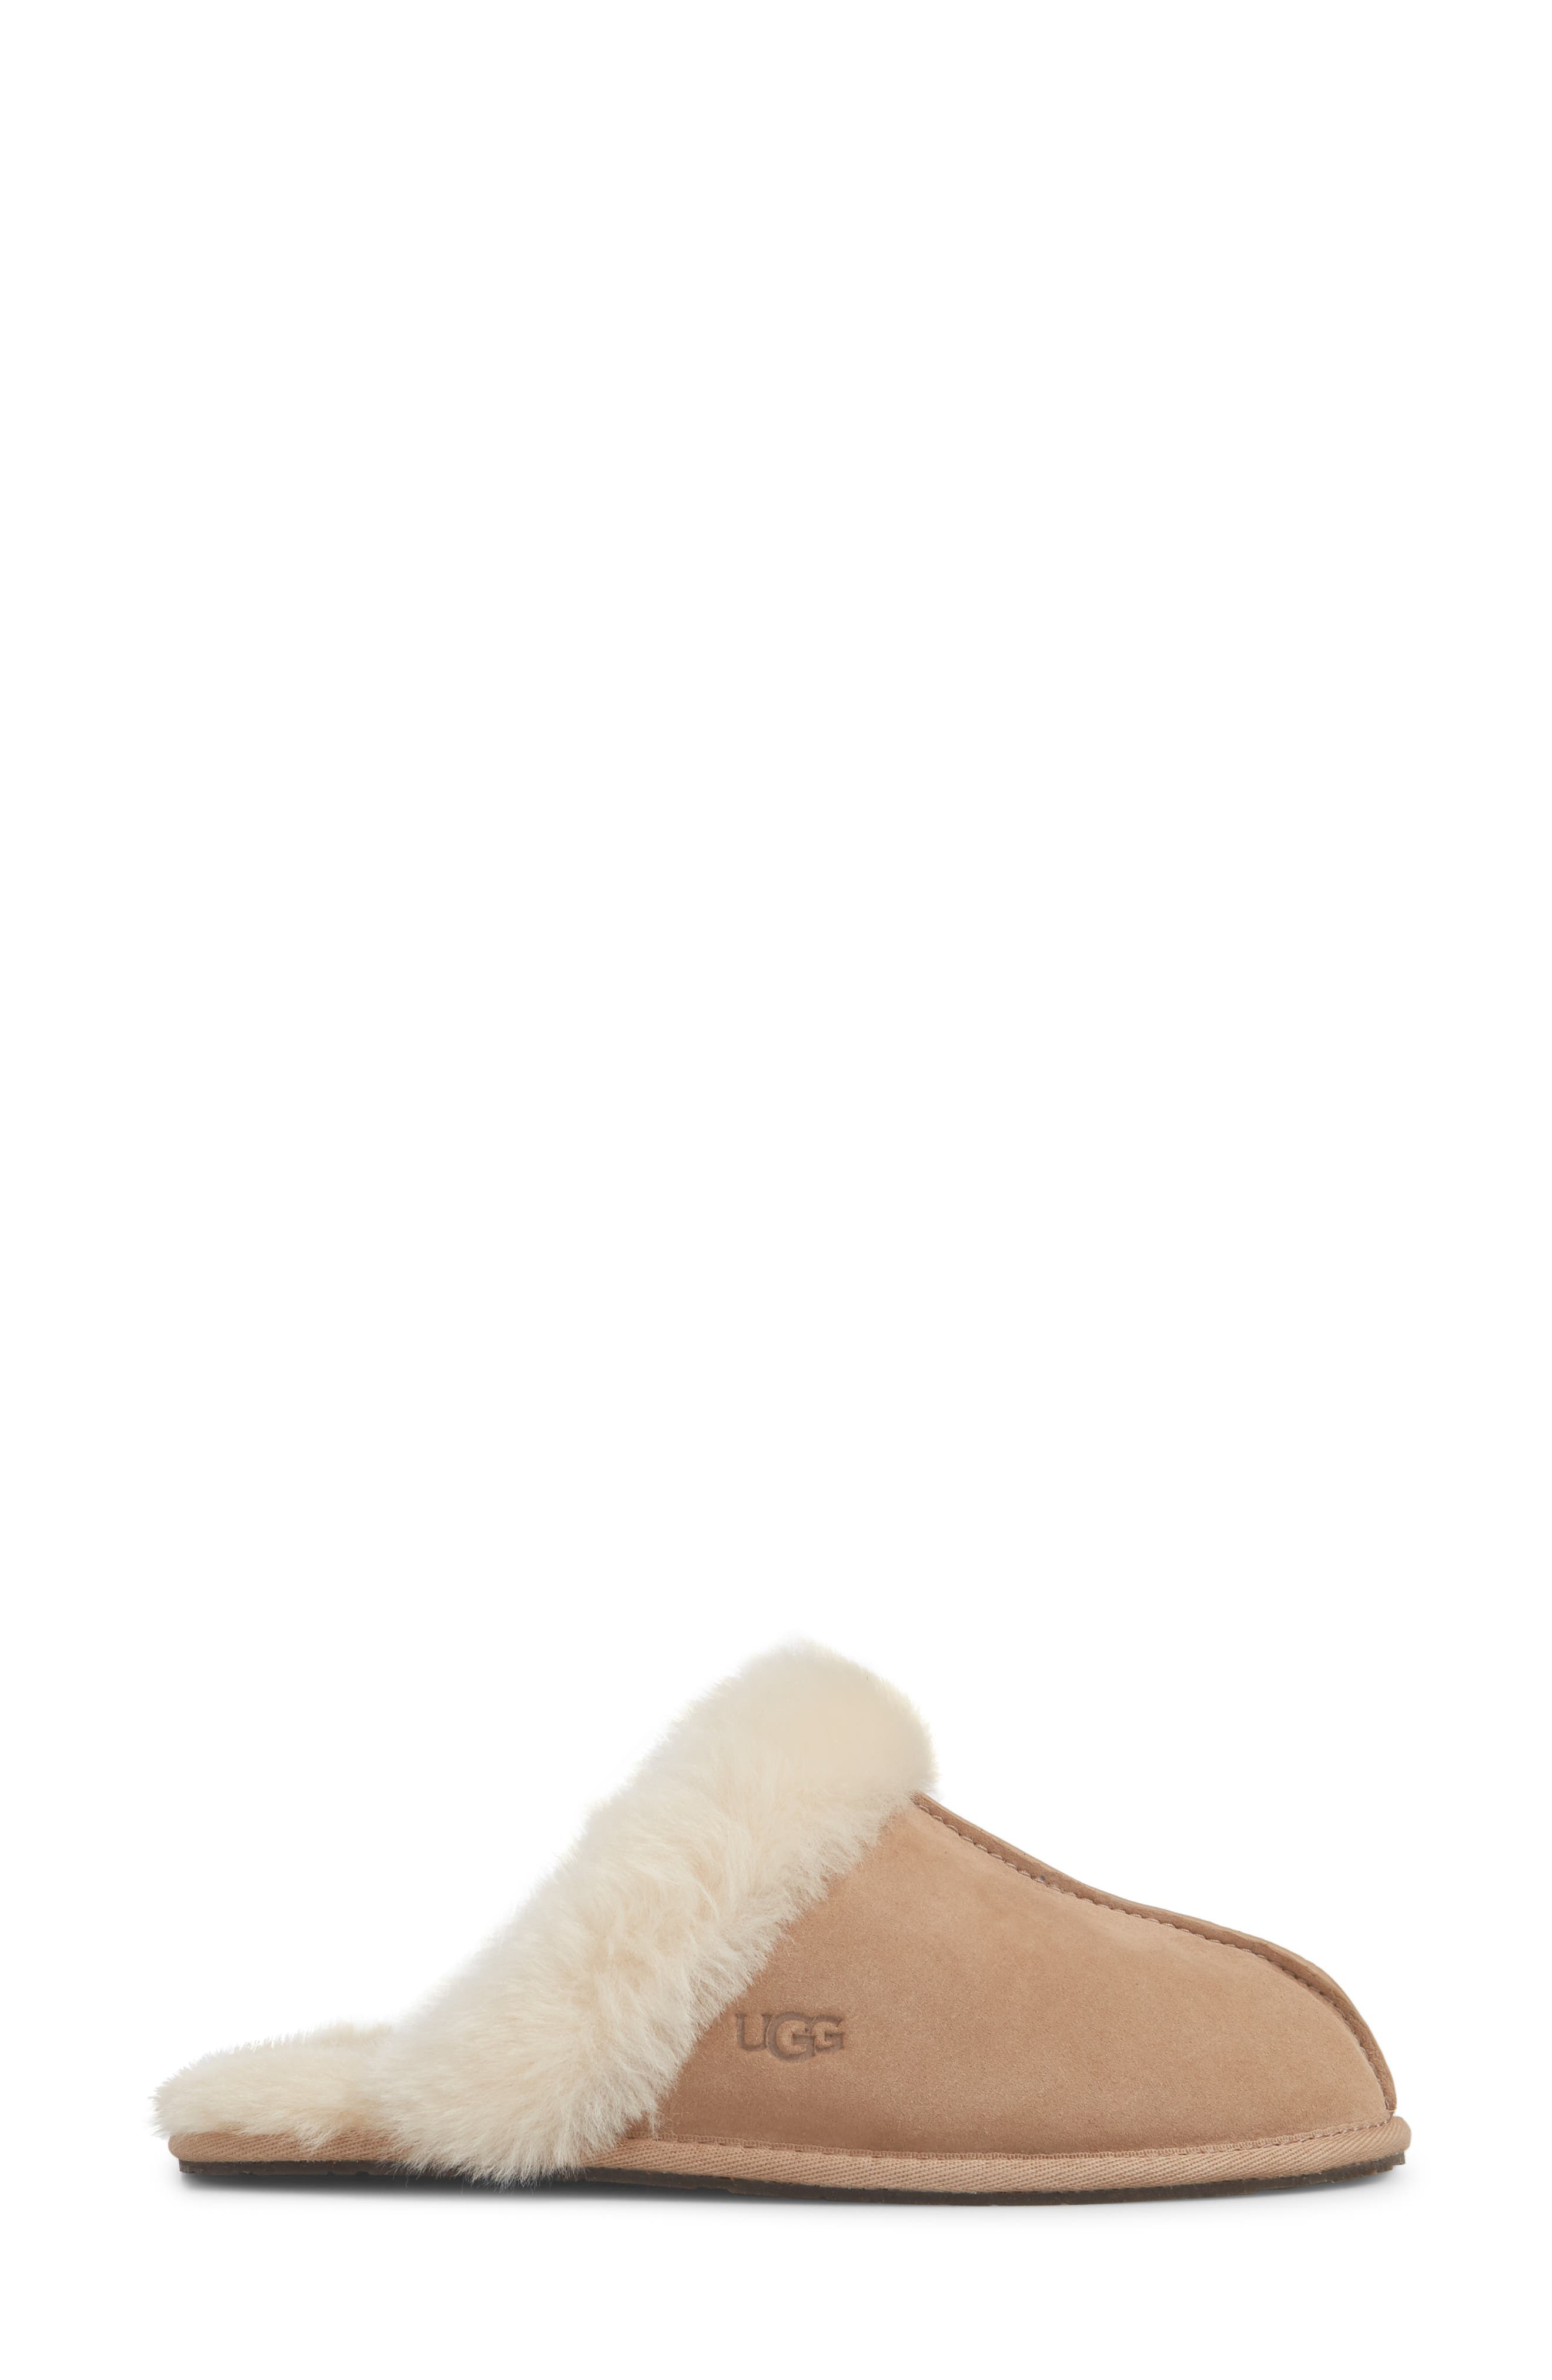 ,                             Scuffette II Water Resistant Slipper,                             Alternate thumbnail 84, color,                             210